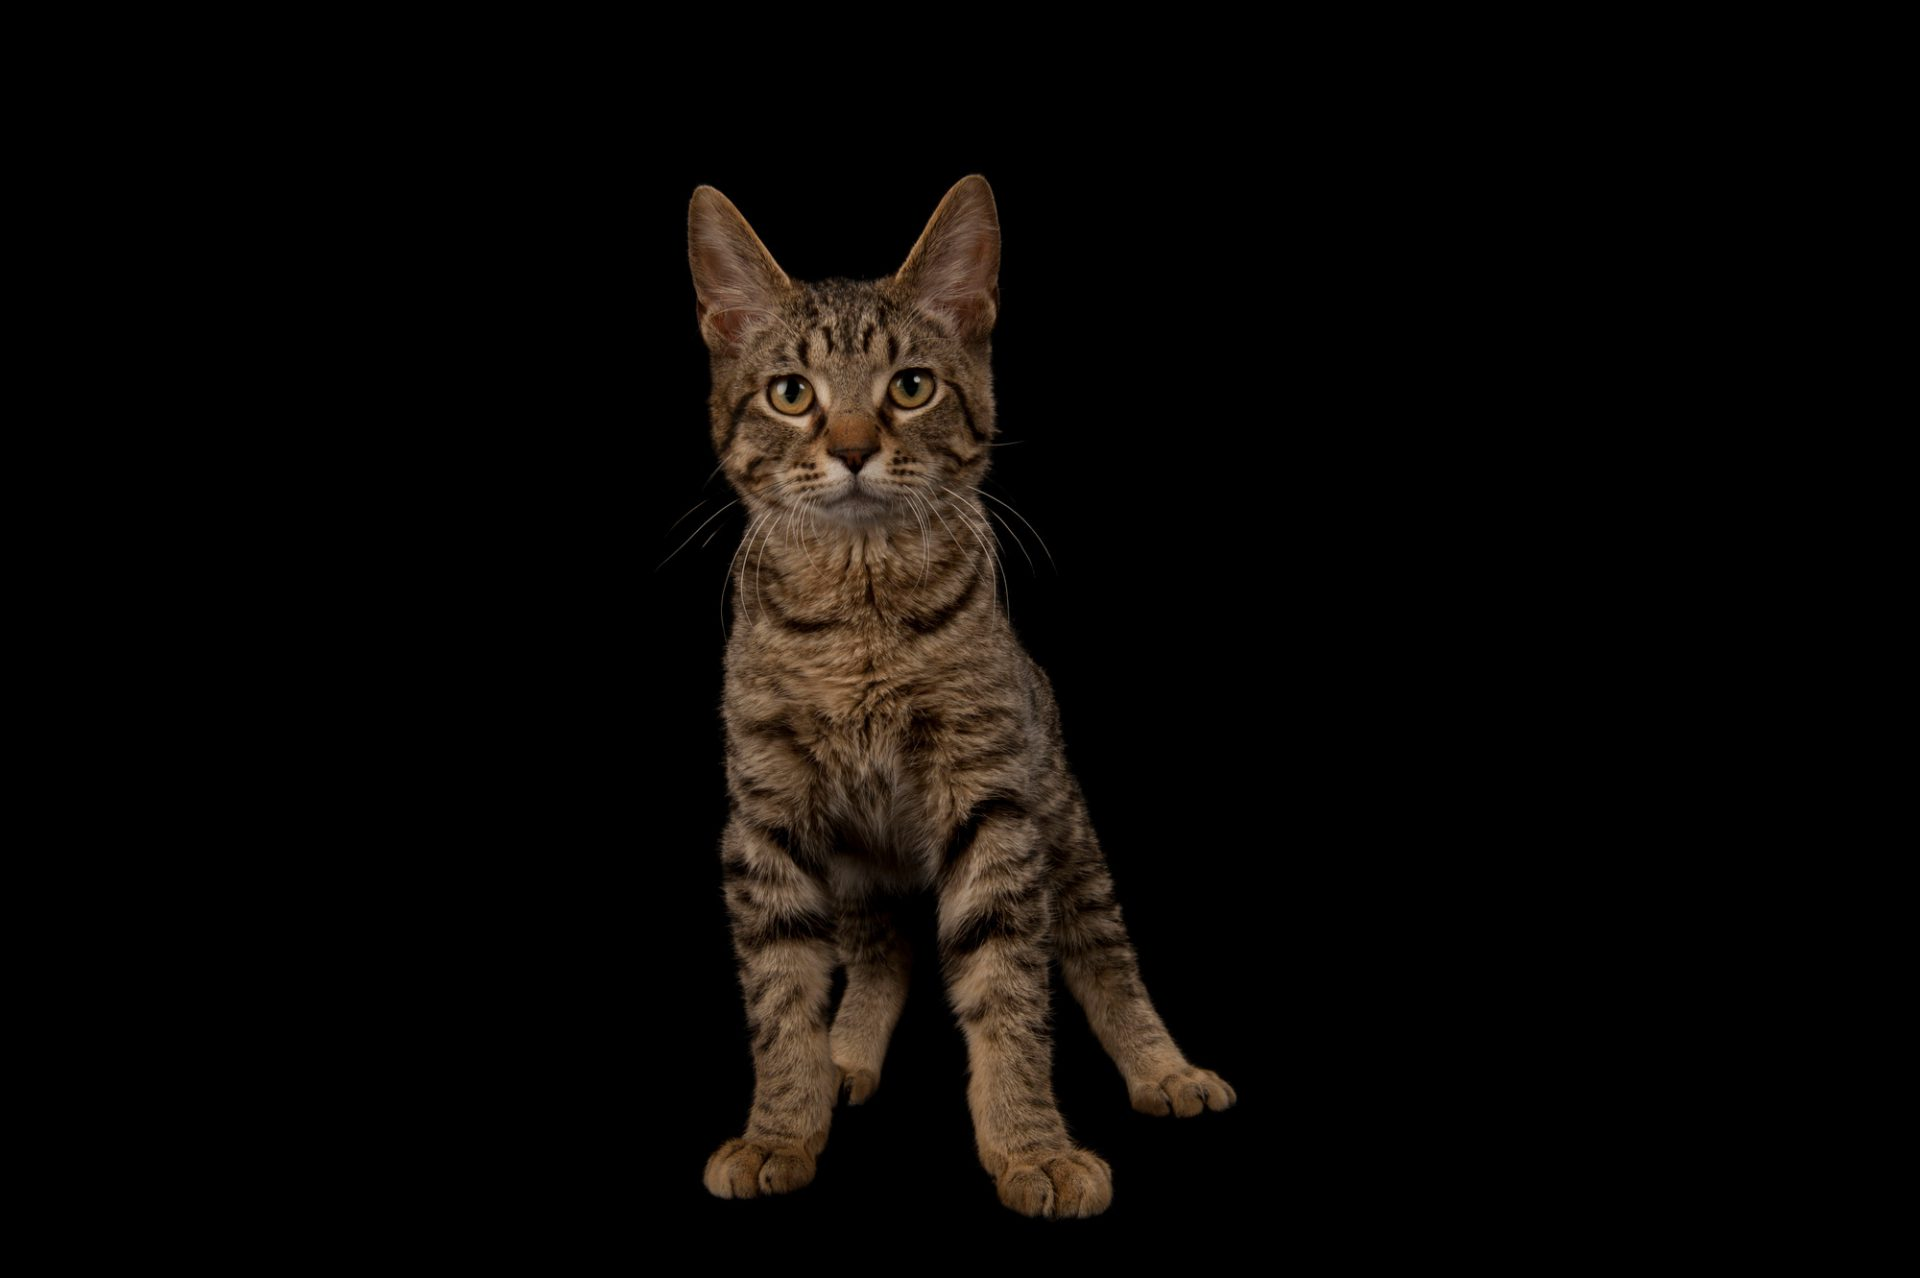 Photo: A tabby cat named Downtown at the Capital Humane Society in Lincoln.